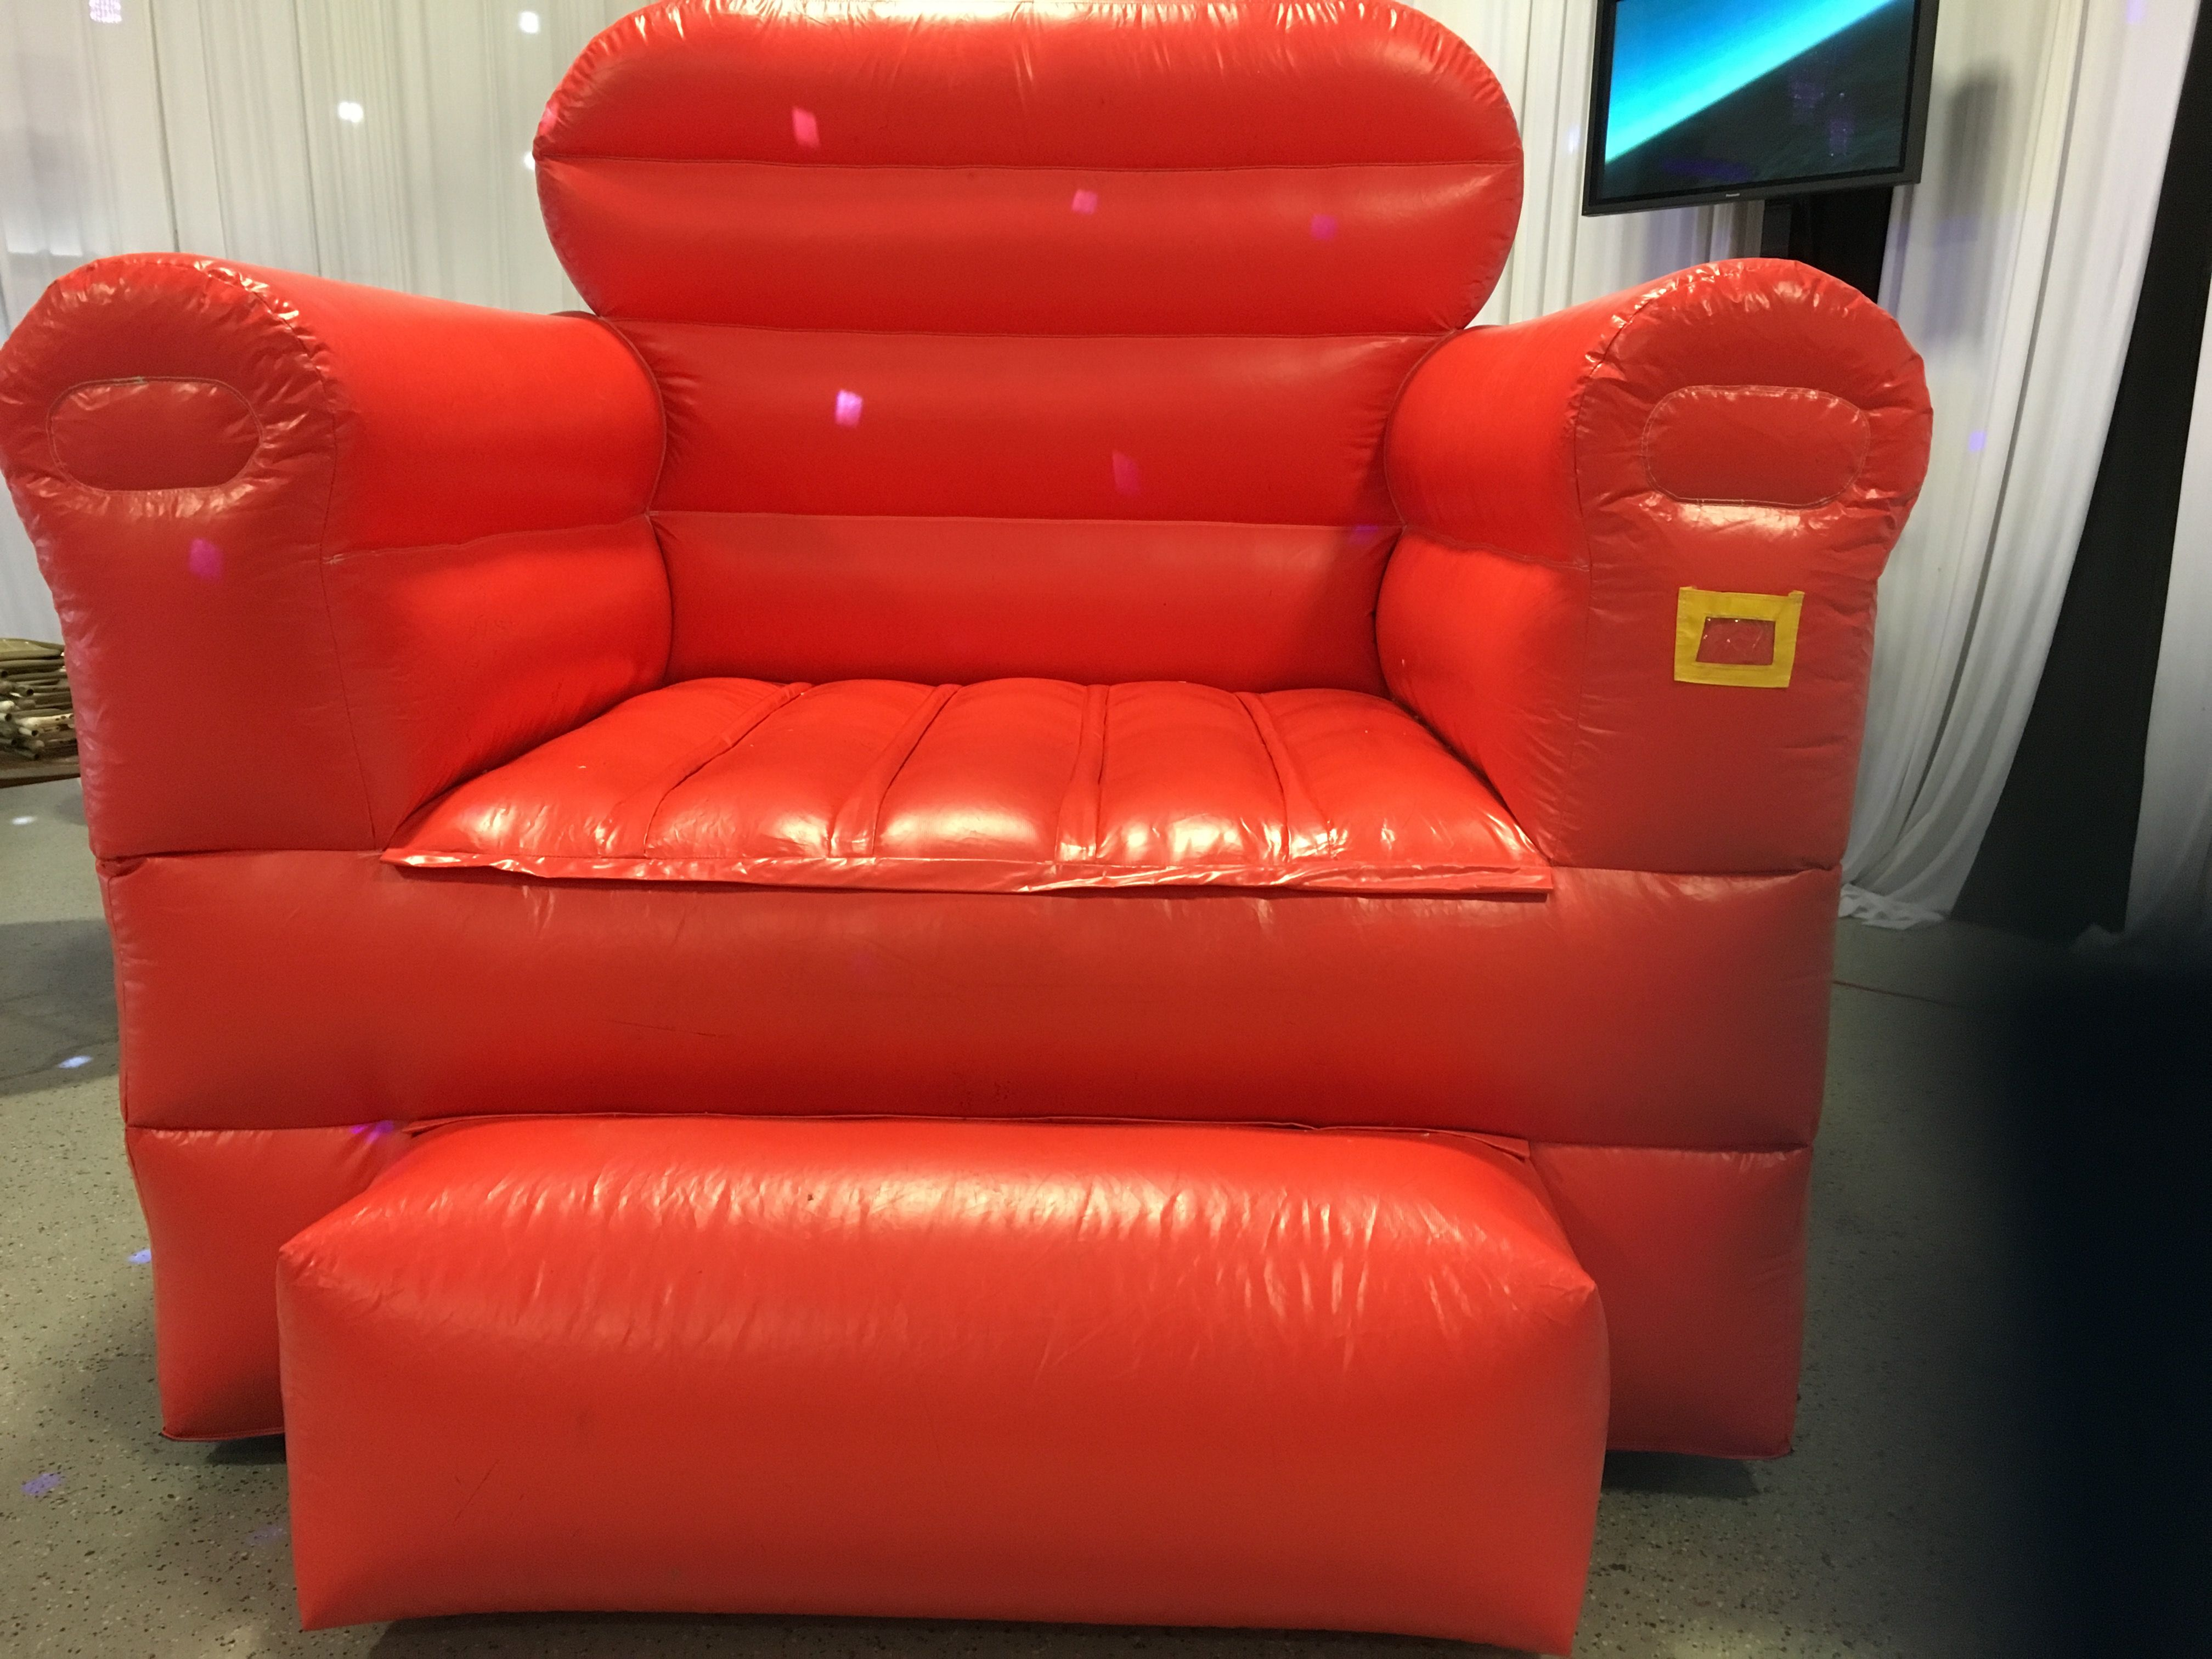 Big Inflatable Couch Big Inflatable Red Chair With Props Games Inflatables